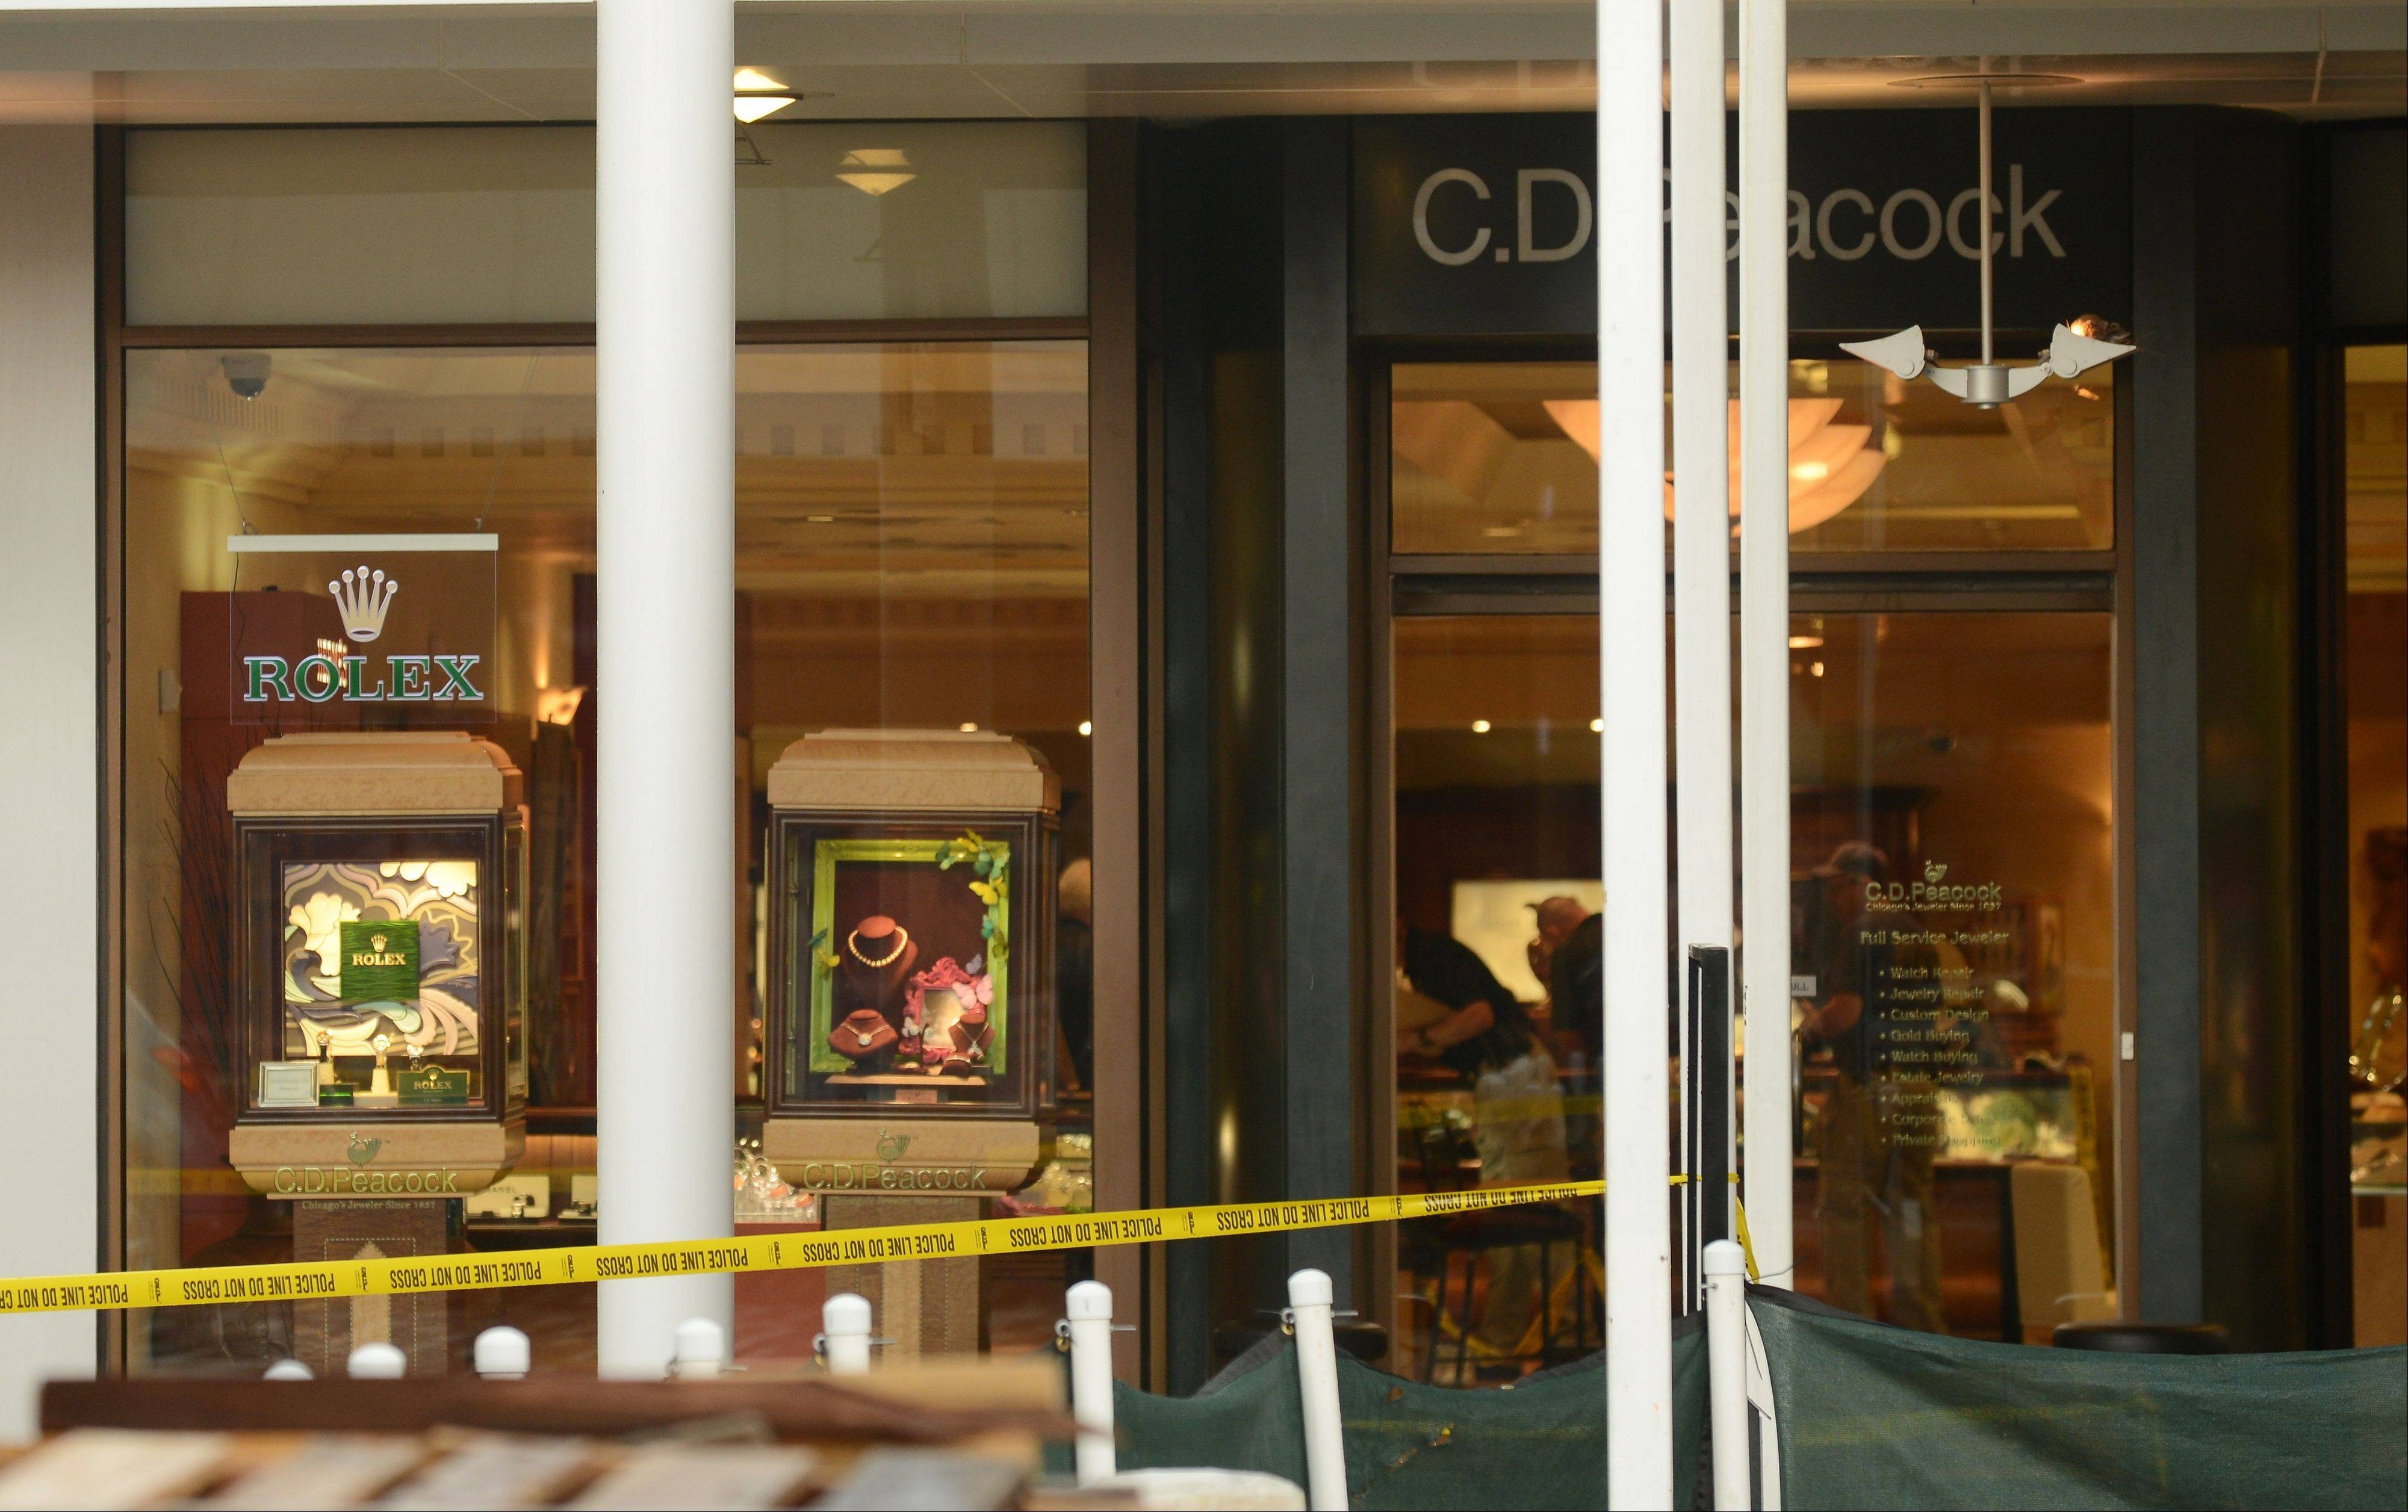 Police tape surrounds the entrance to the C.D. Peacock jewelry store at Oakbrook Center mall after gunfire erupted Sunday afternoon during an attempted robbery. Police said a robbery suspects was shot in the abdomen by a security guard while two other suspects escaped.